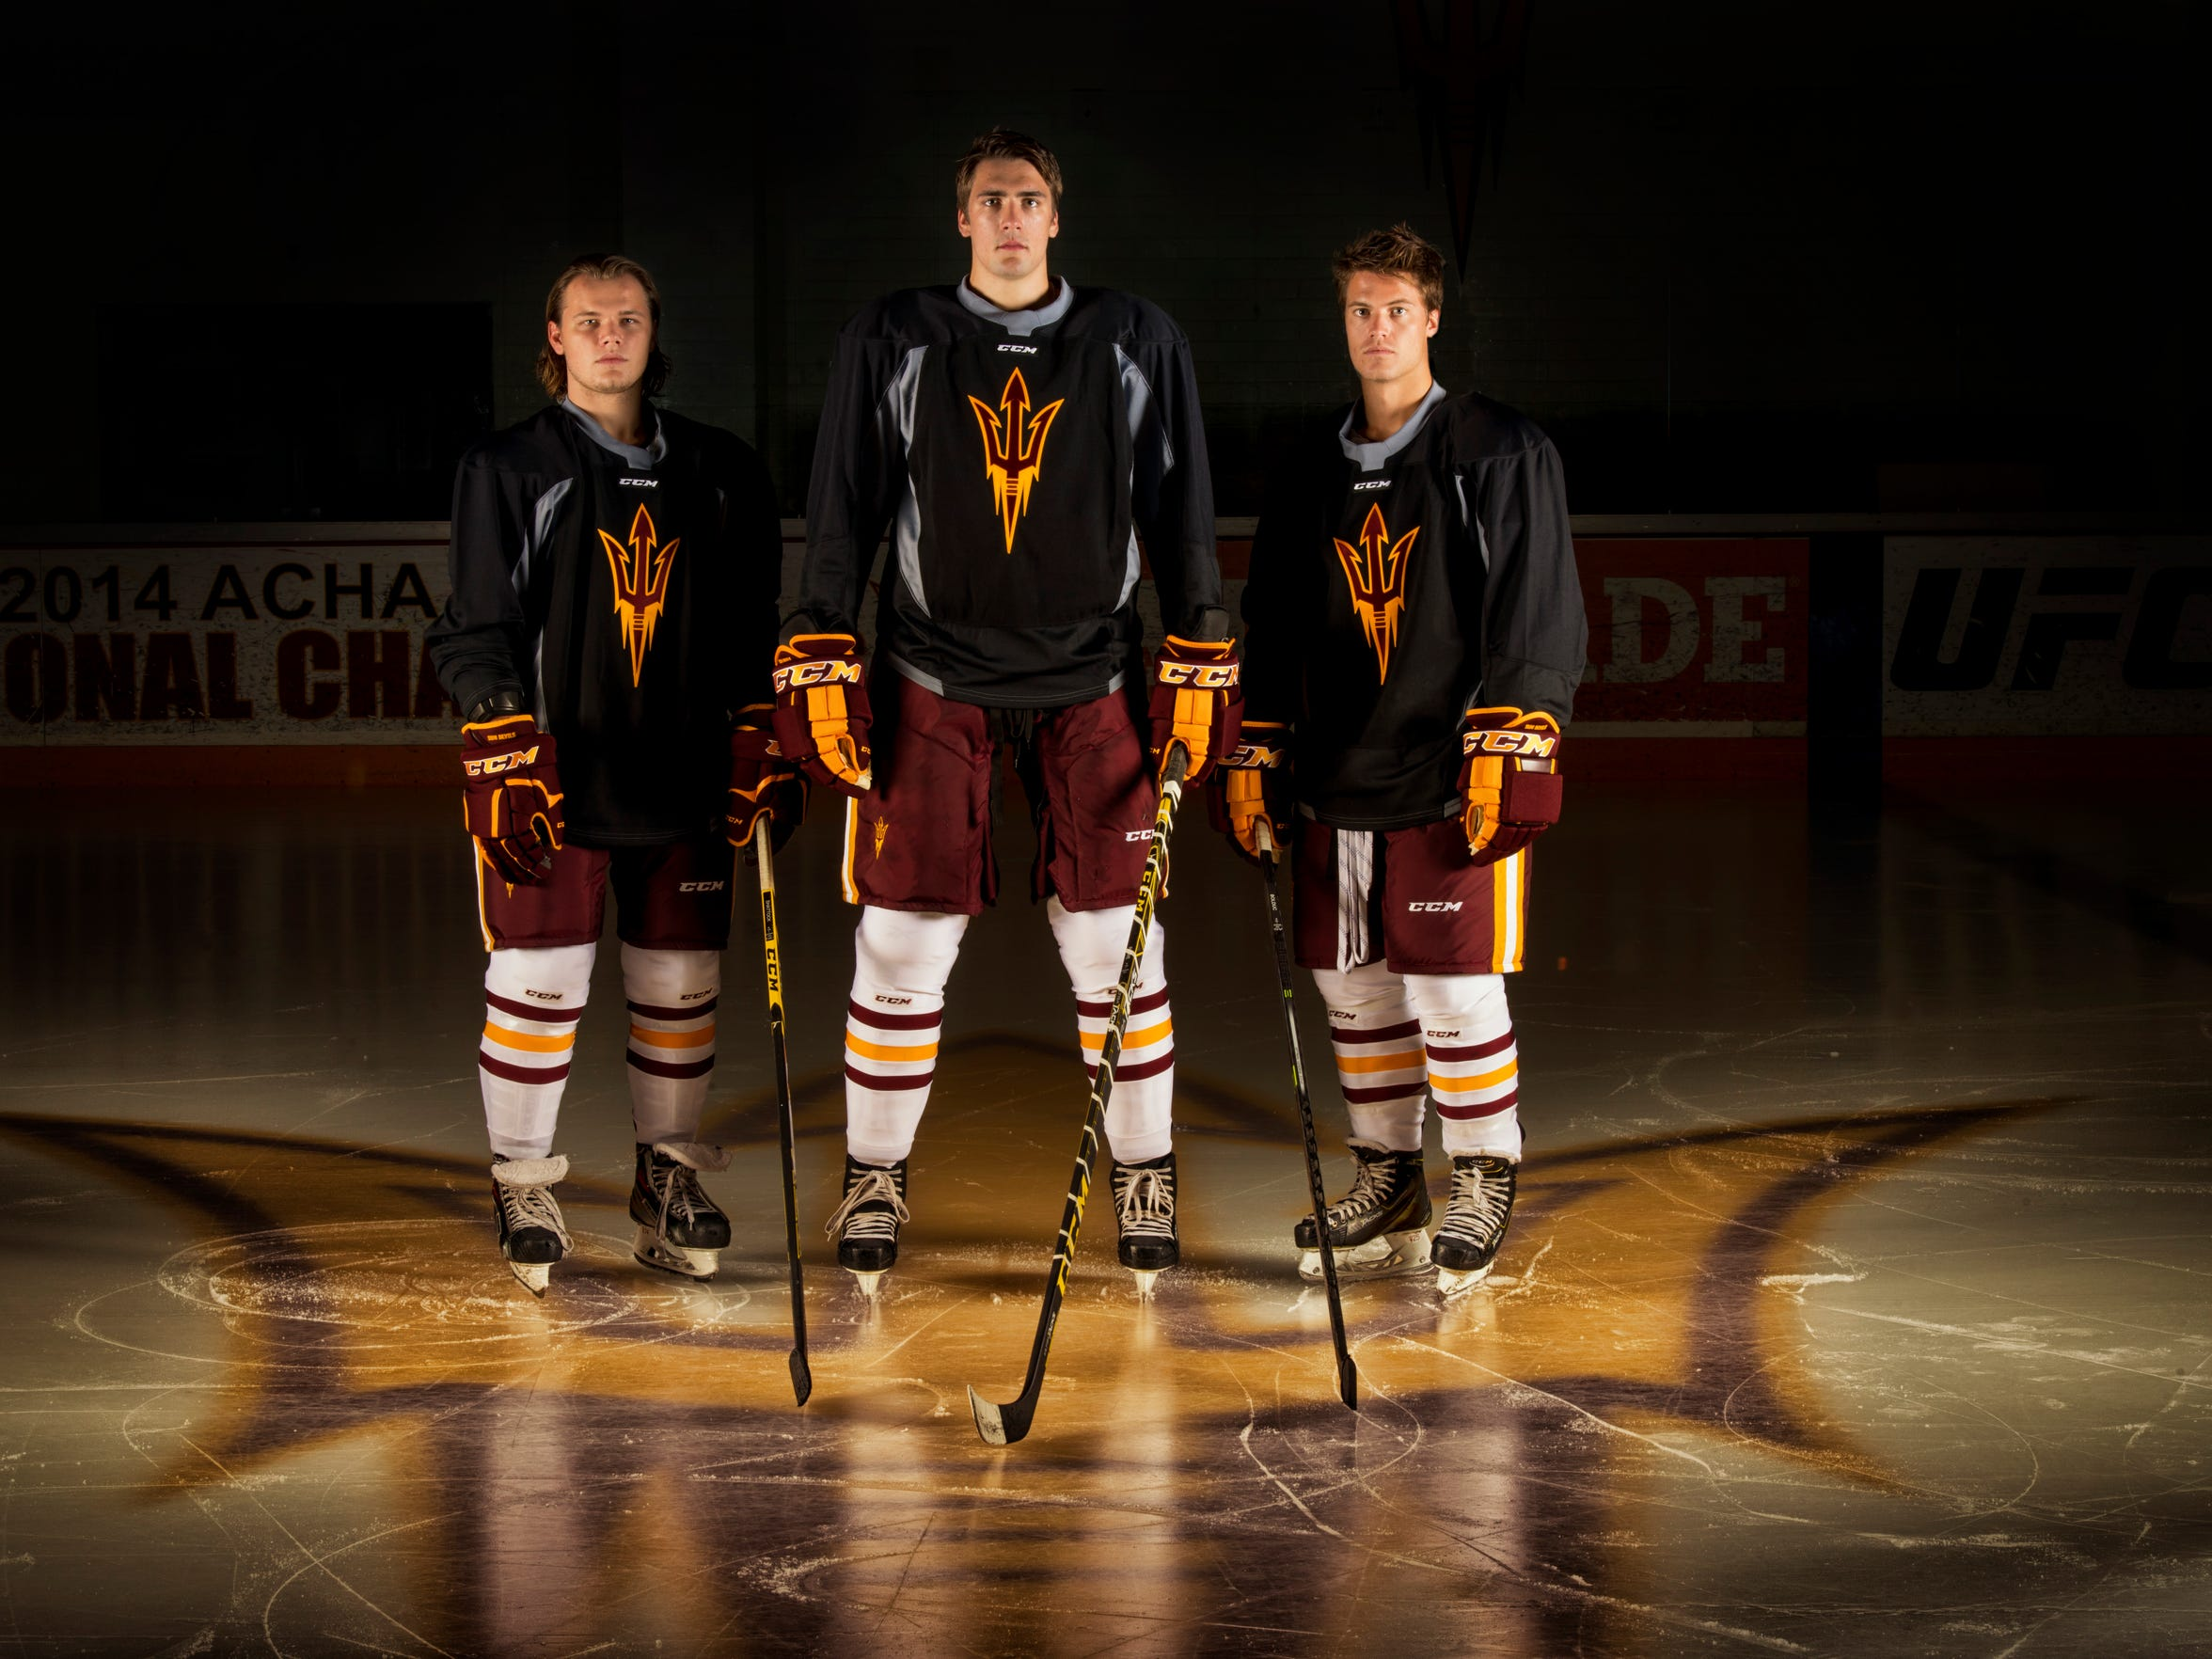 Connor Schmidt, Louie Rowe and Liam Norris (L-R) are